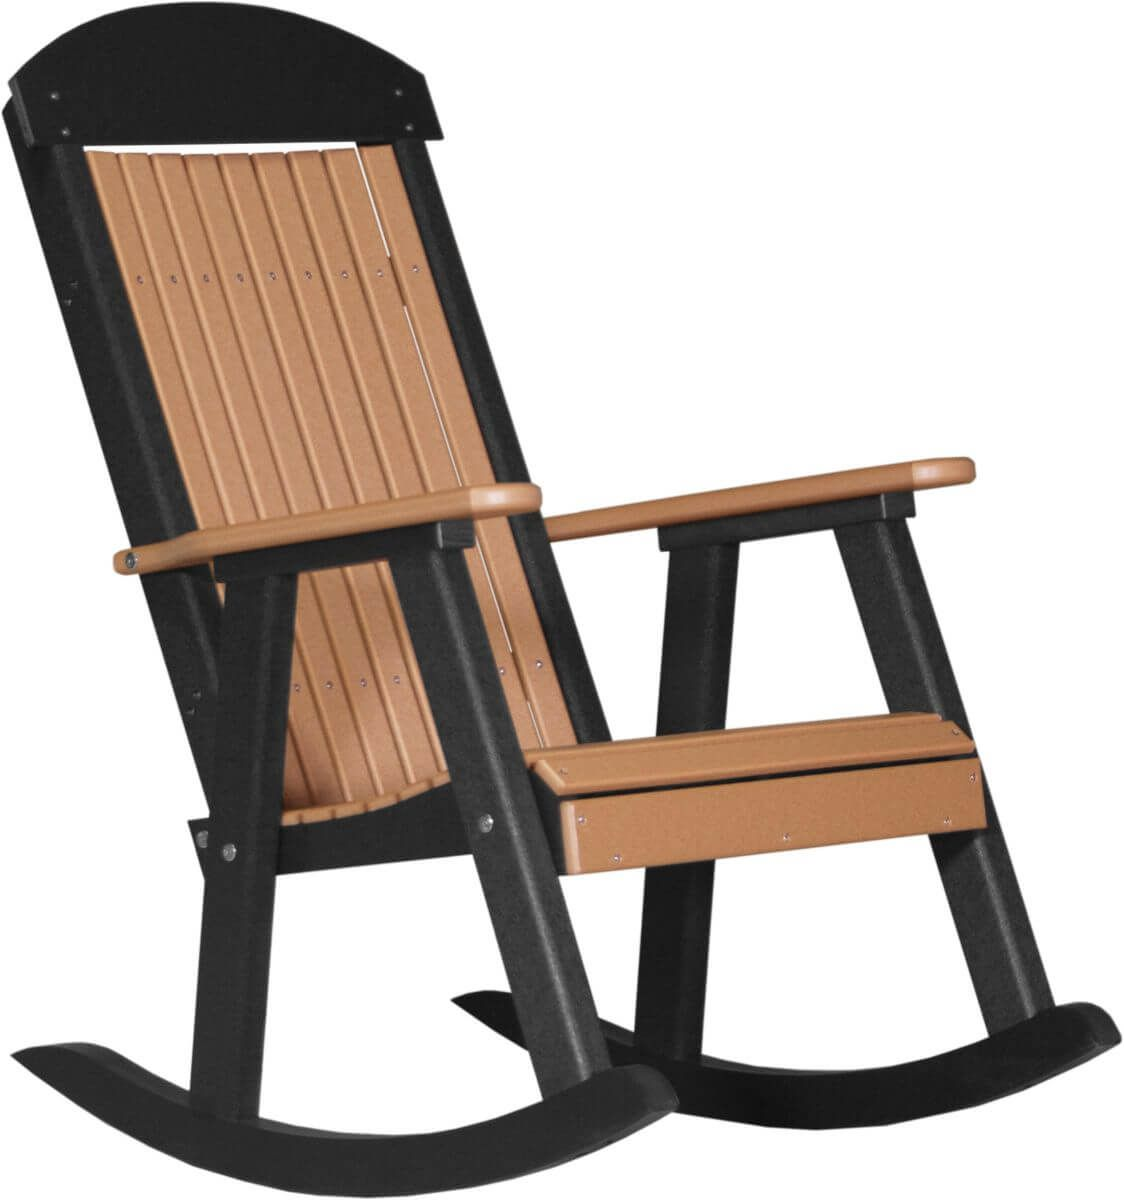 Cedar and Black Stockton Porch Rocker